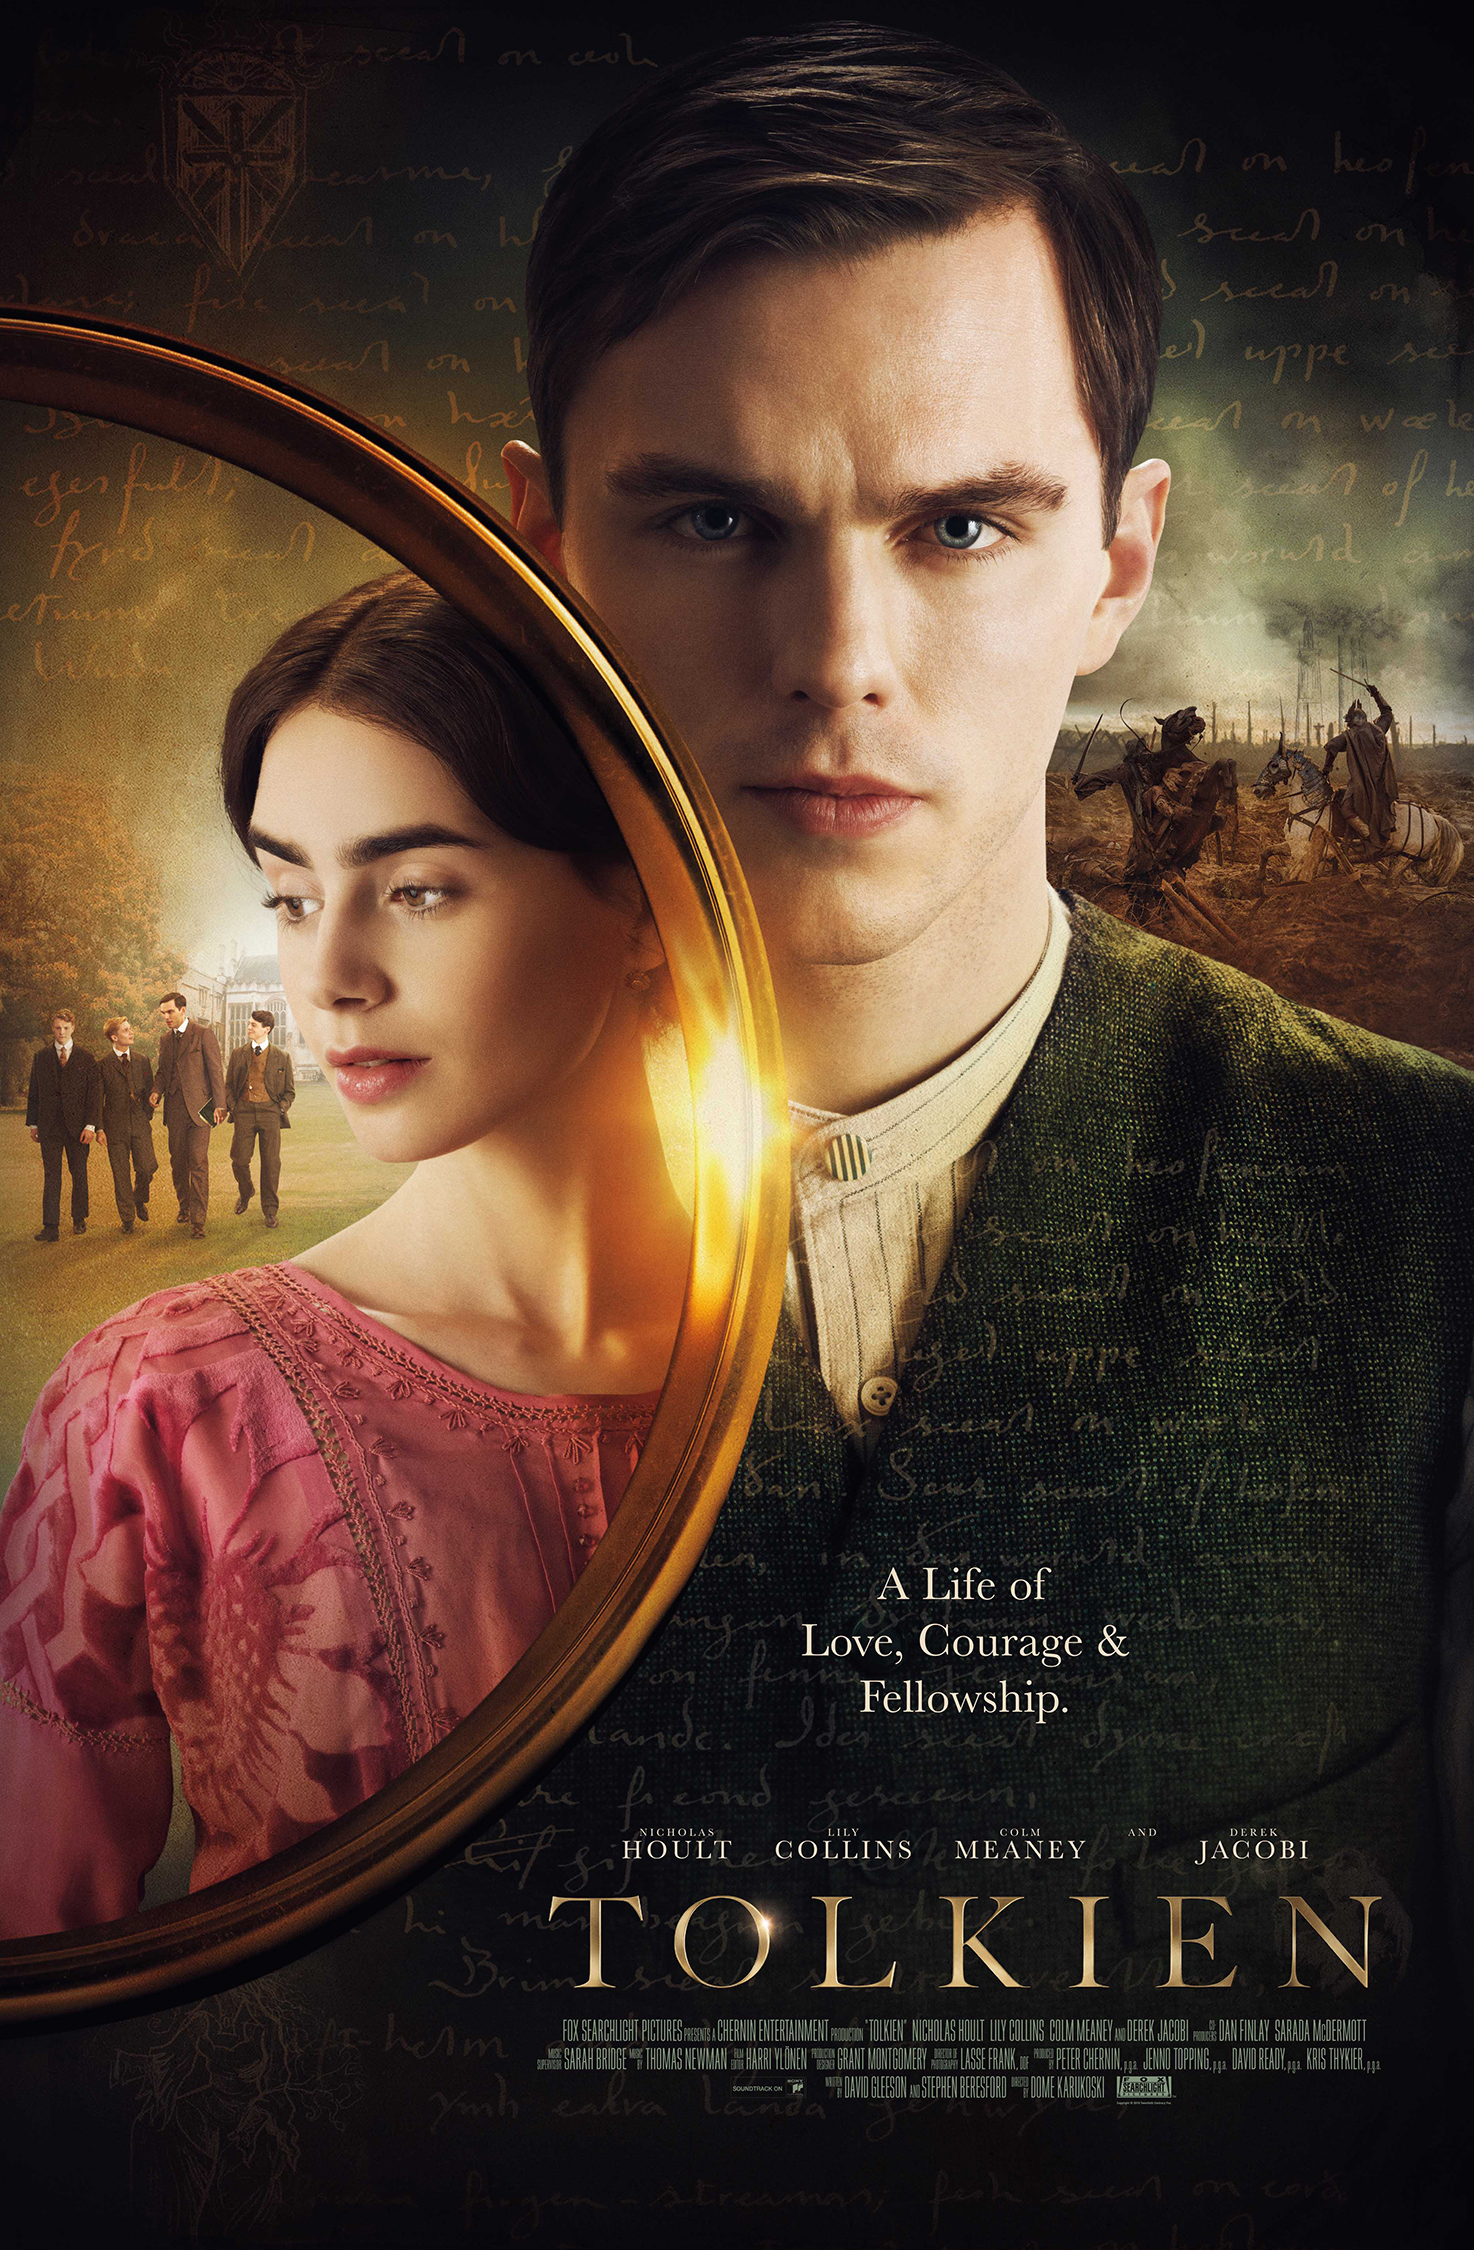 TOLKIEN - Exclusive information about the film - which can be used to enhance your cinema experience